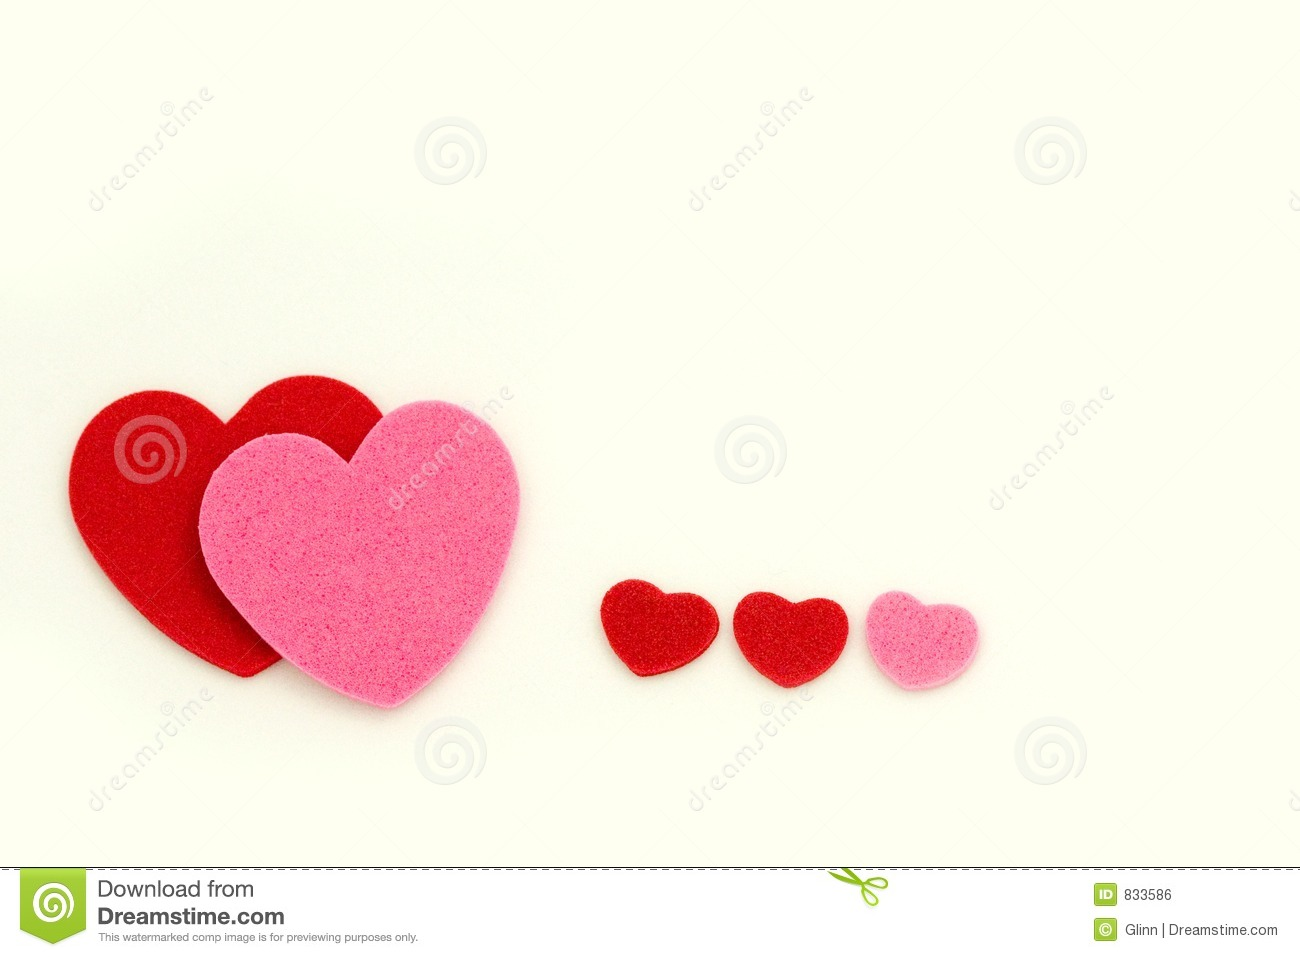 Love, Love and More Love